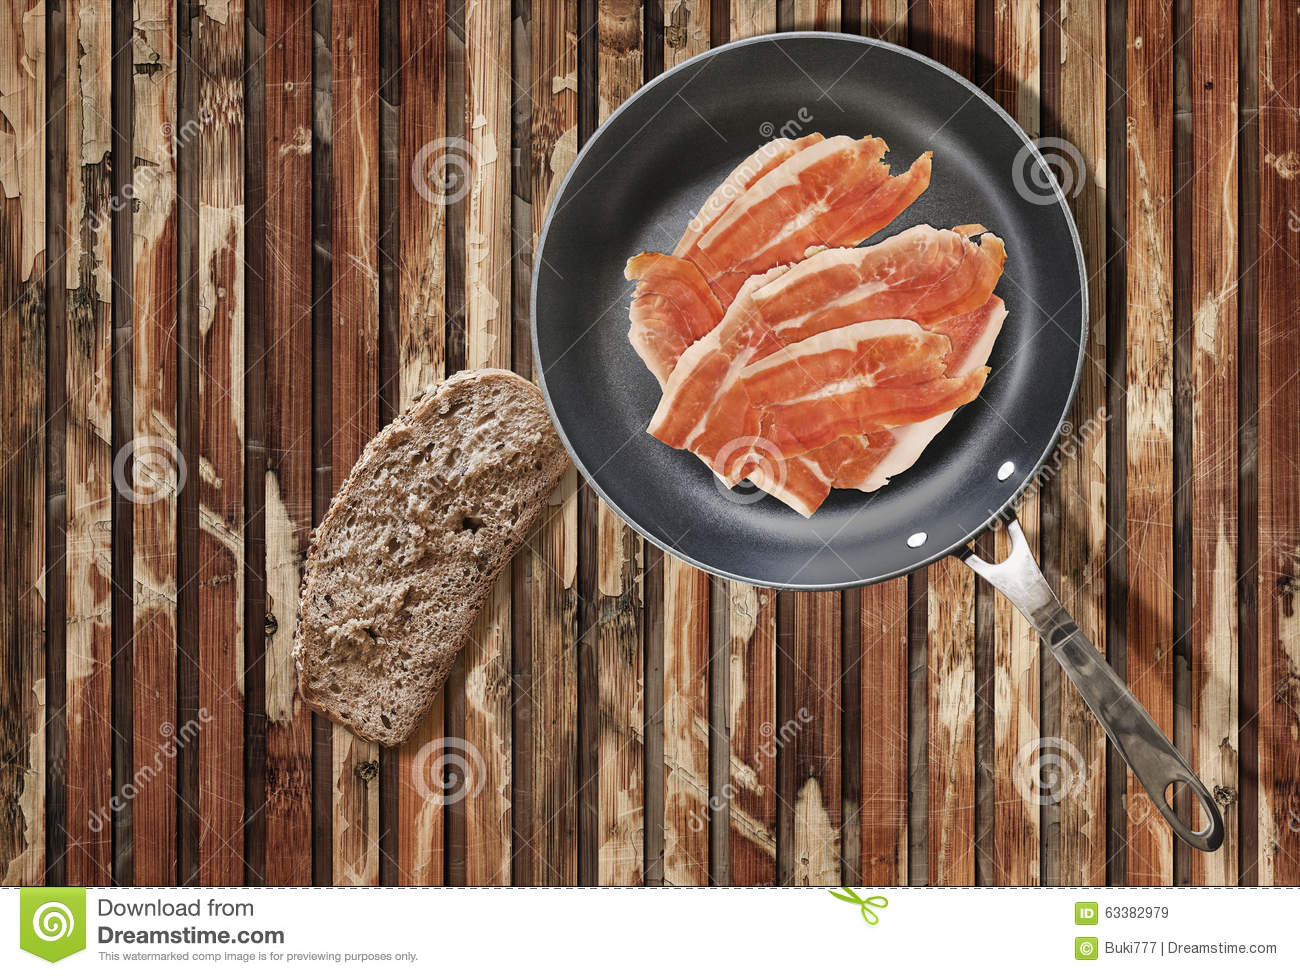 how to cook pork rashers in a pan